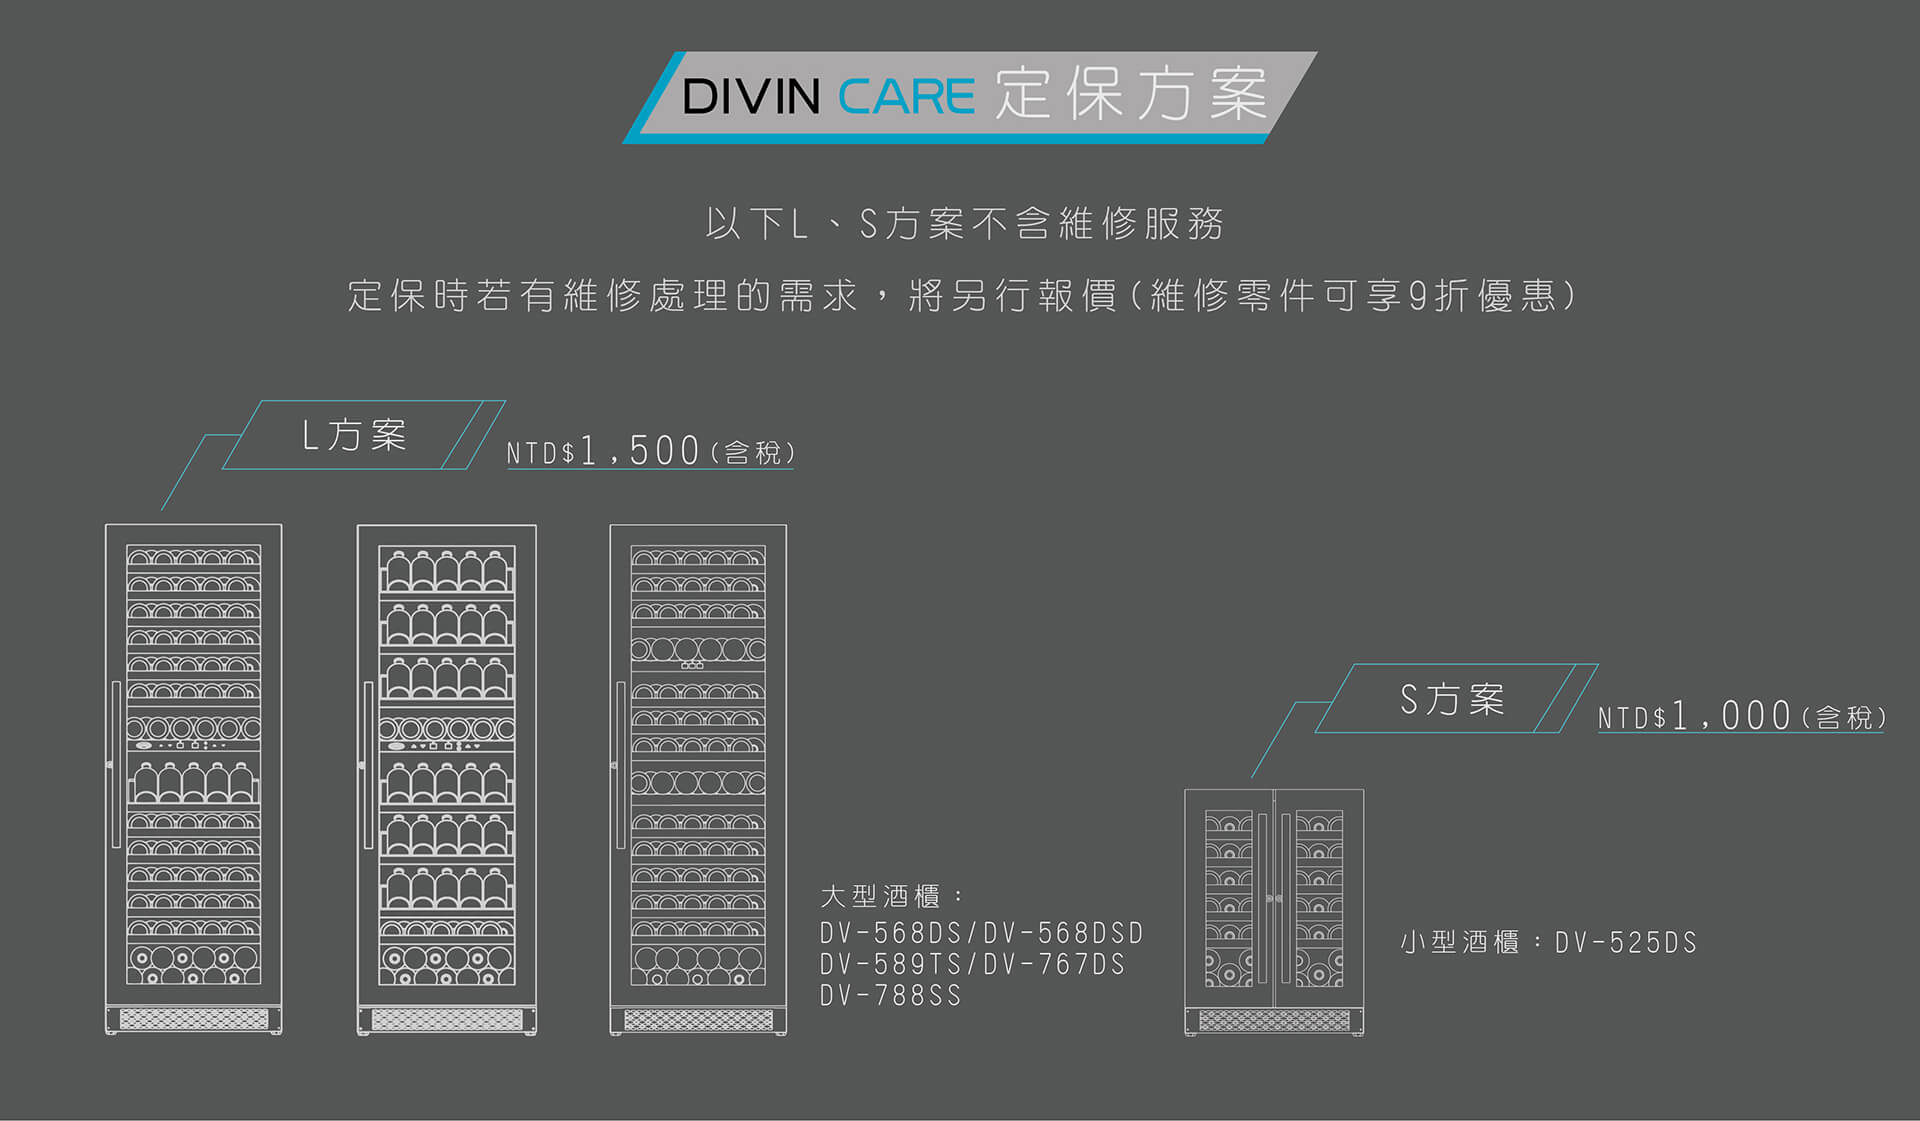 DIVIN Care定保方案